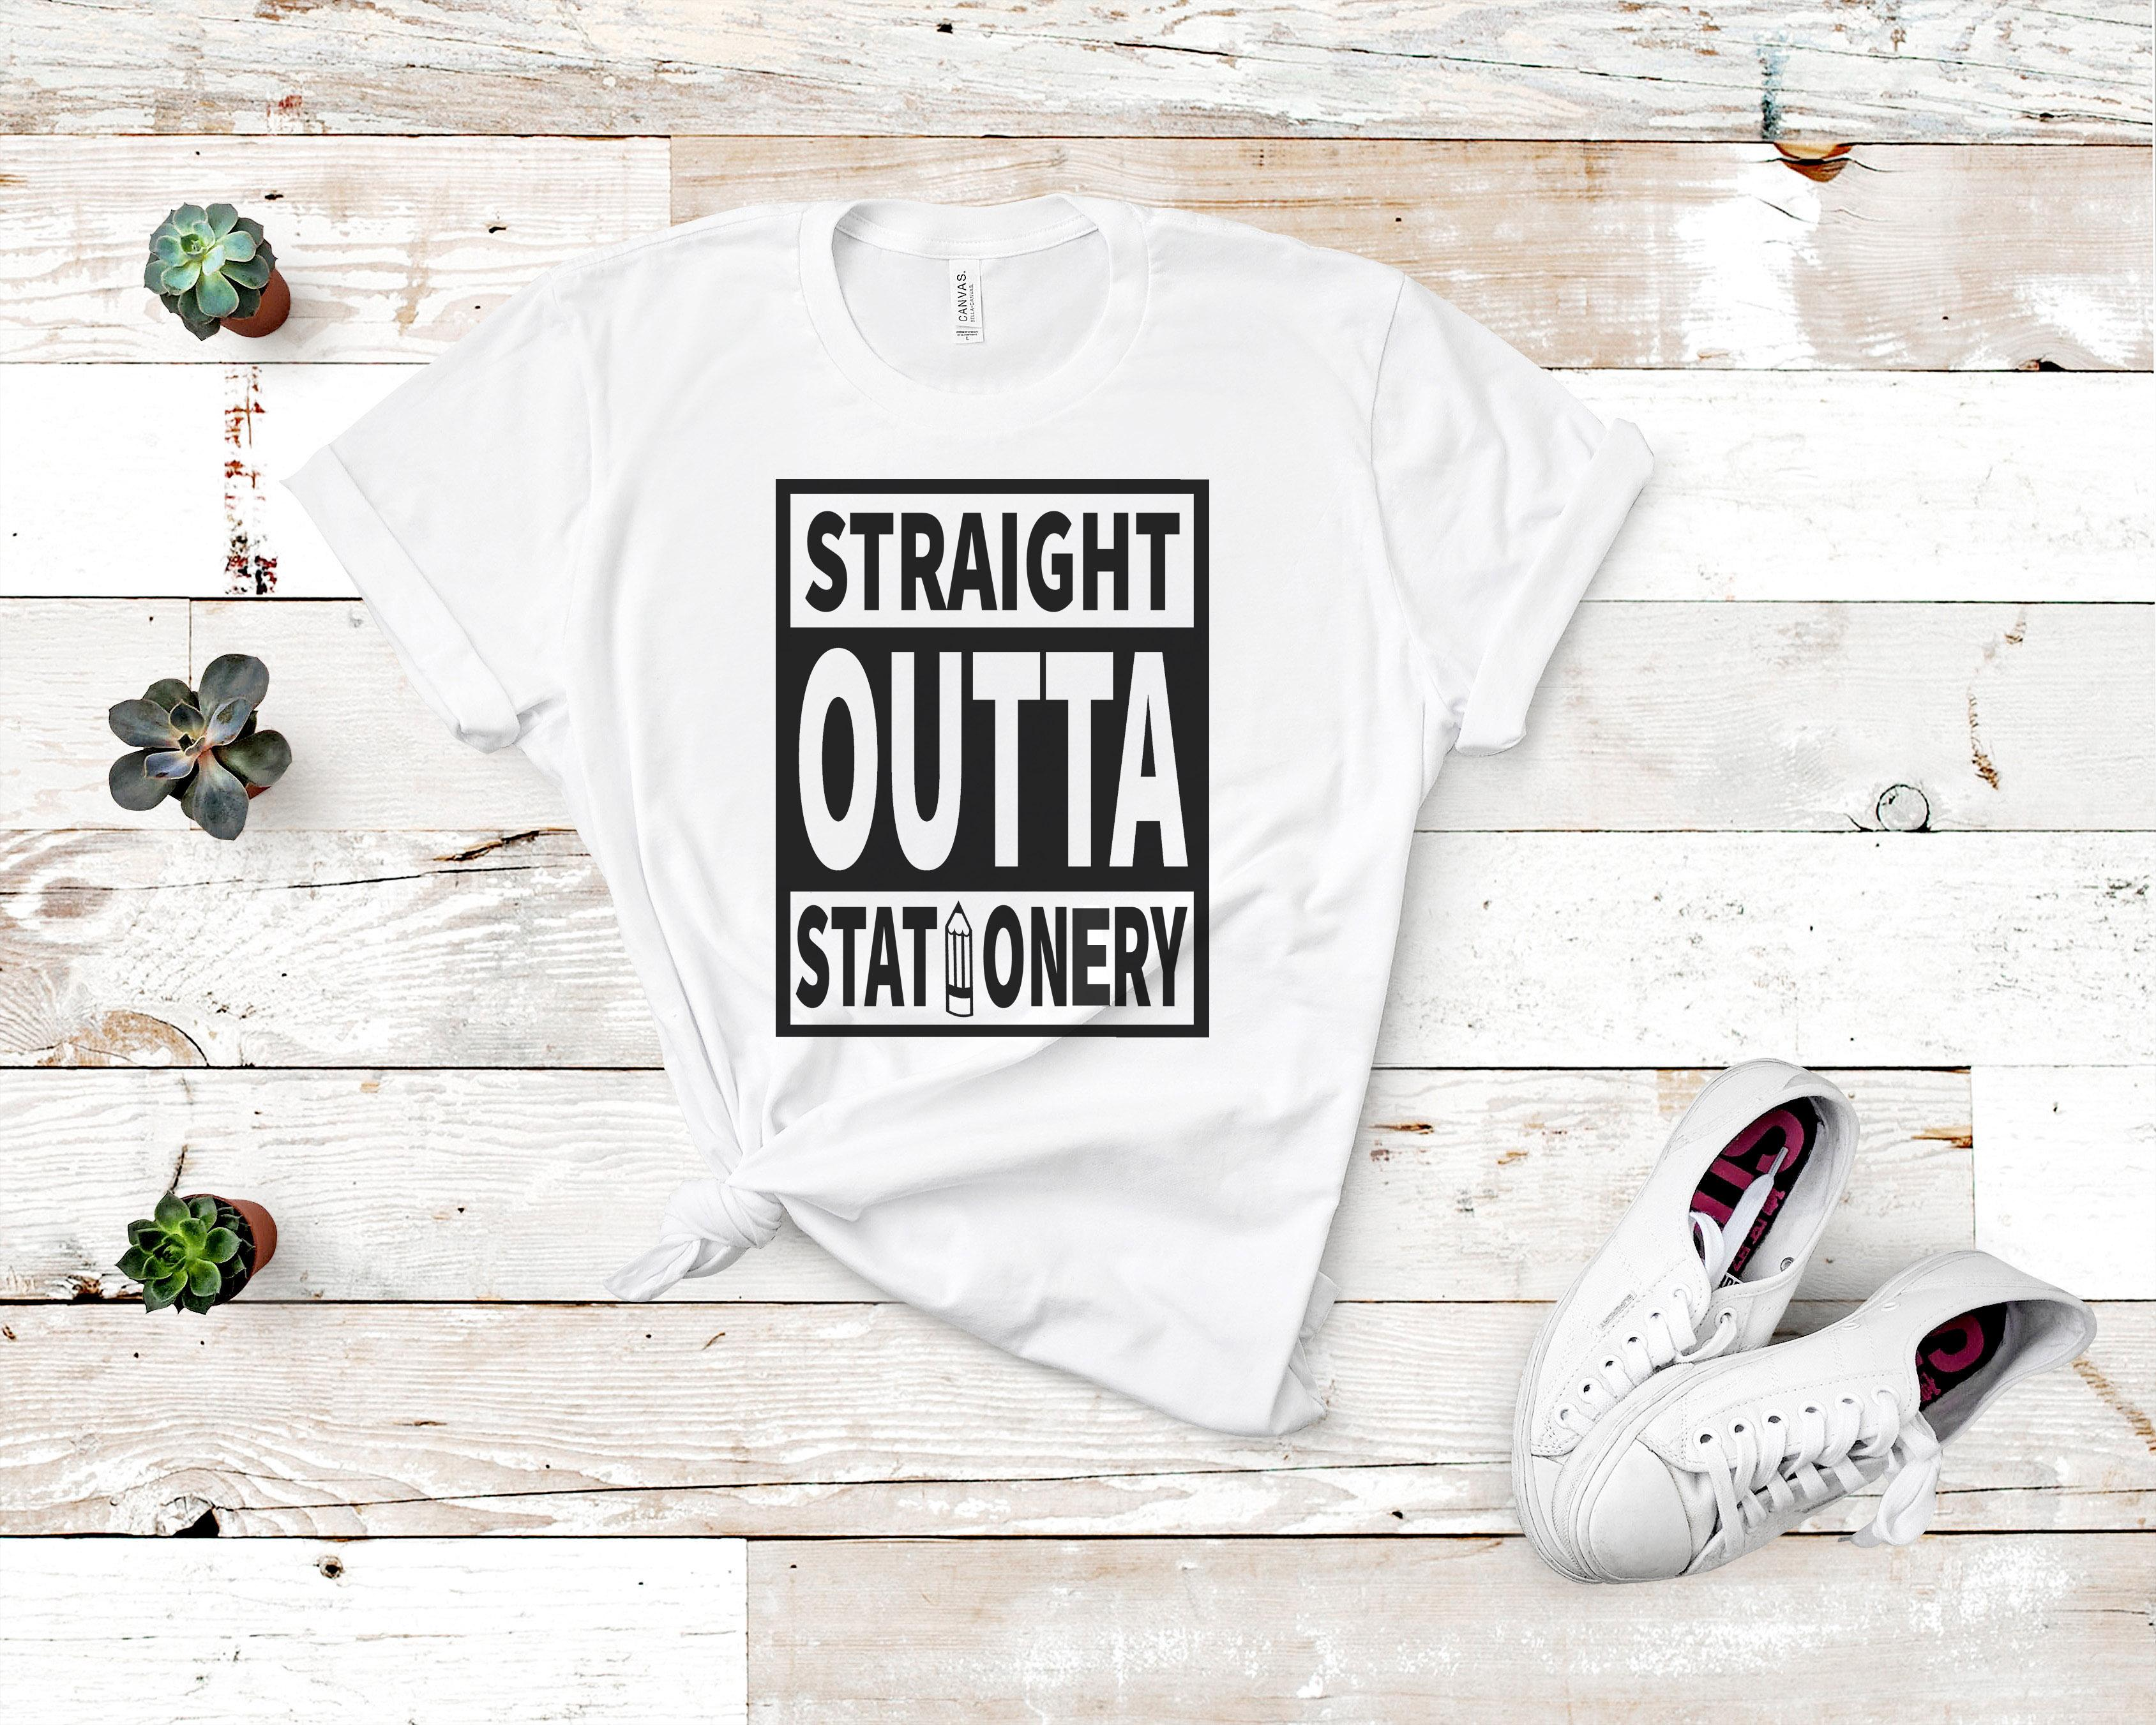 Free Straight Outta Stationery SVG File